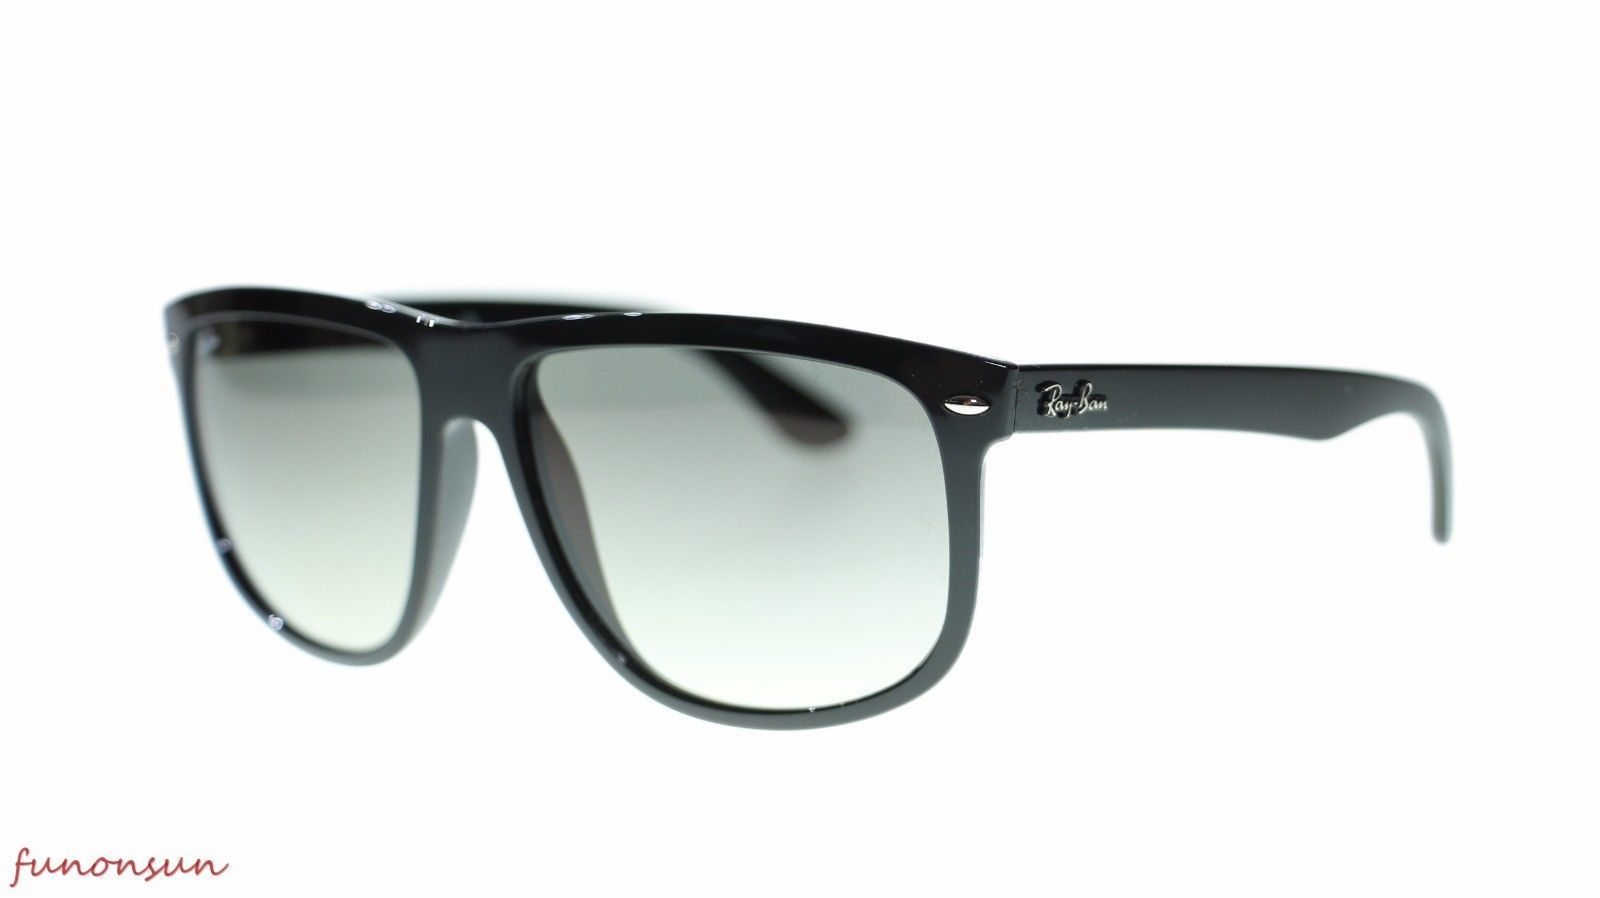 Ray Ban Man's Sunglasses RB4147 601/32 Black Gray Gradient Lens Authentic